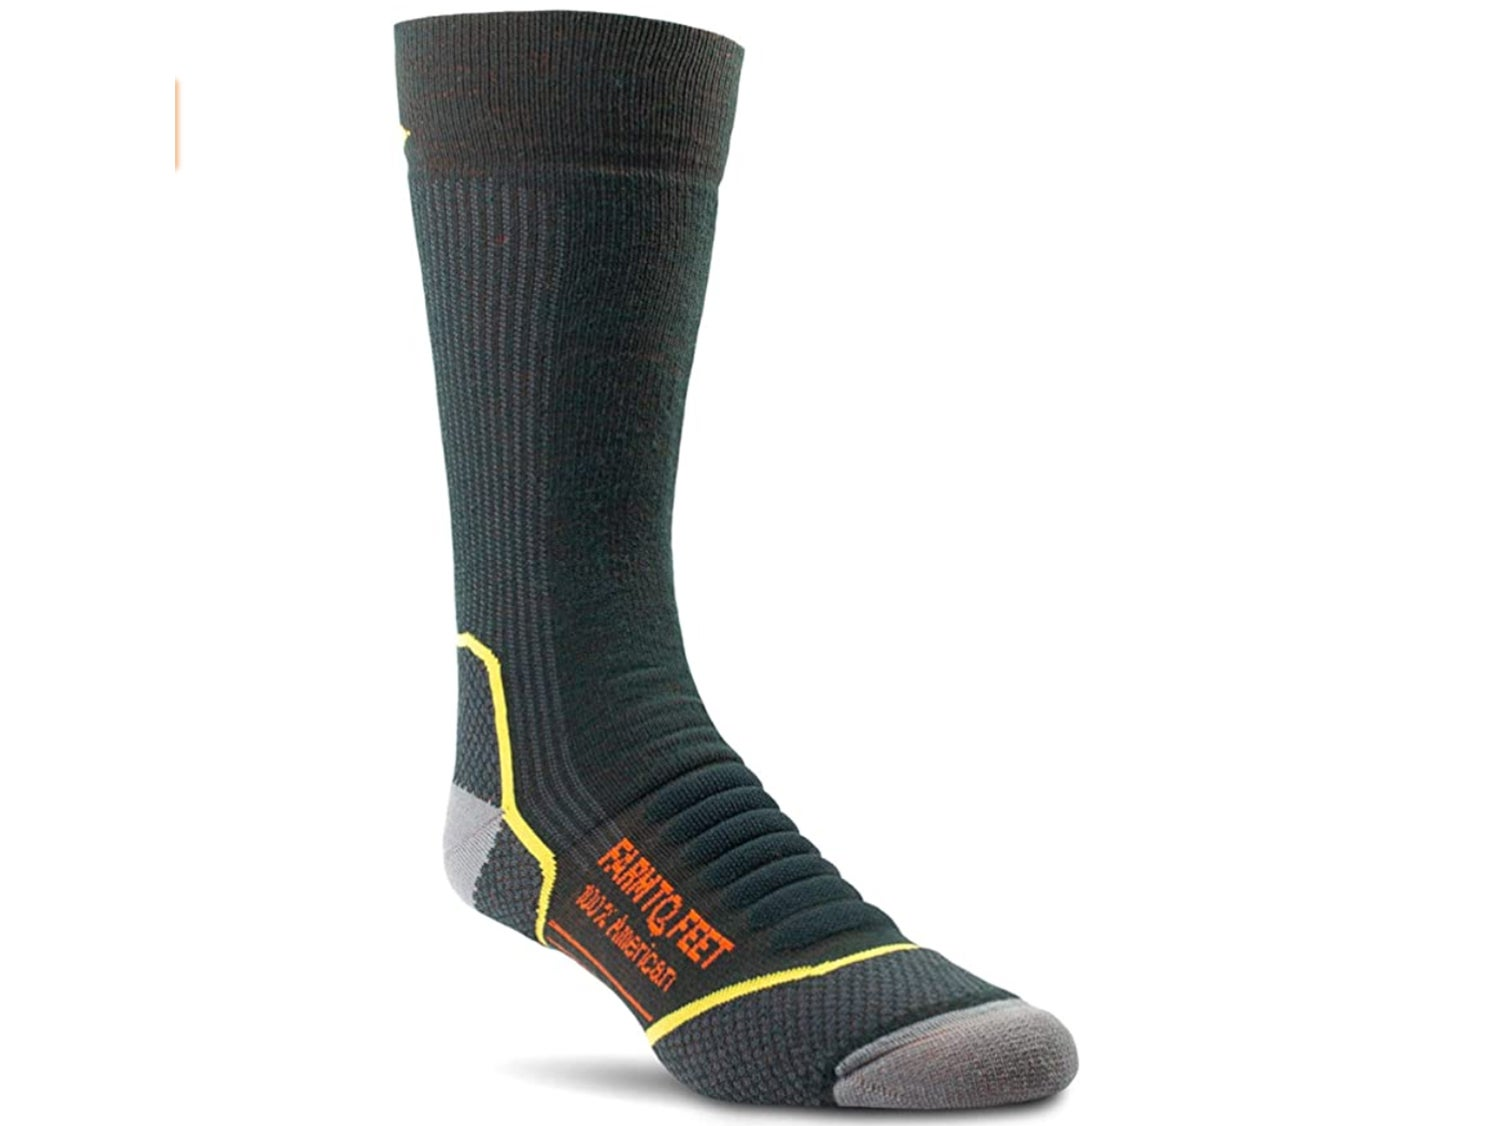 A thick pair of socks